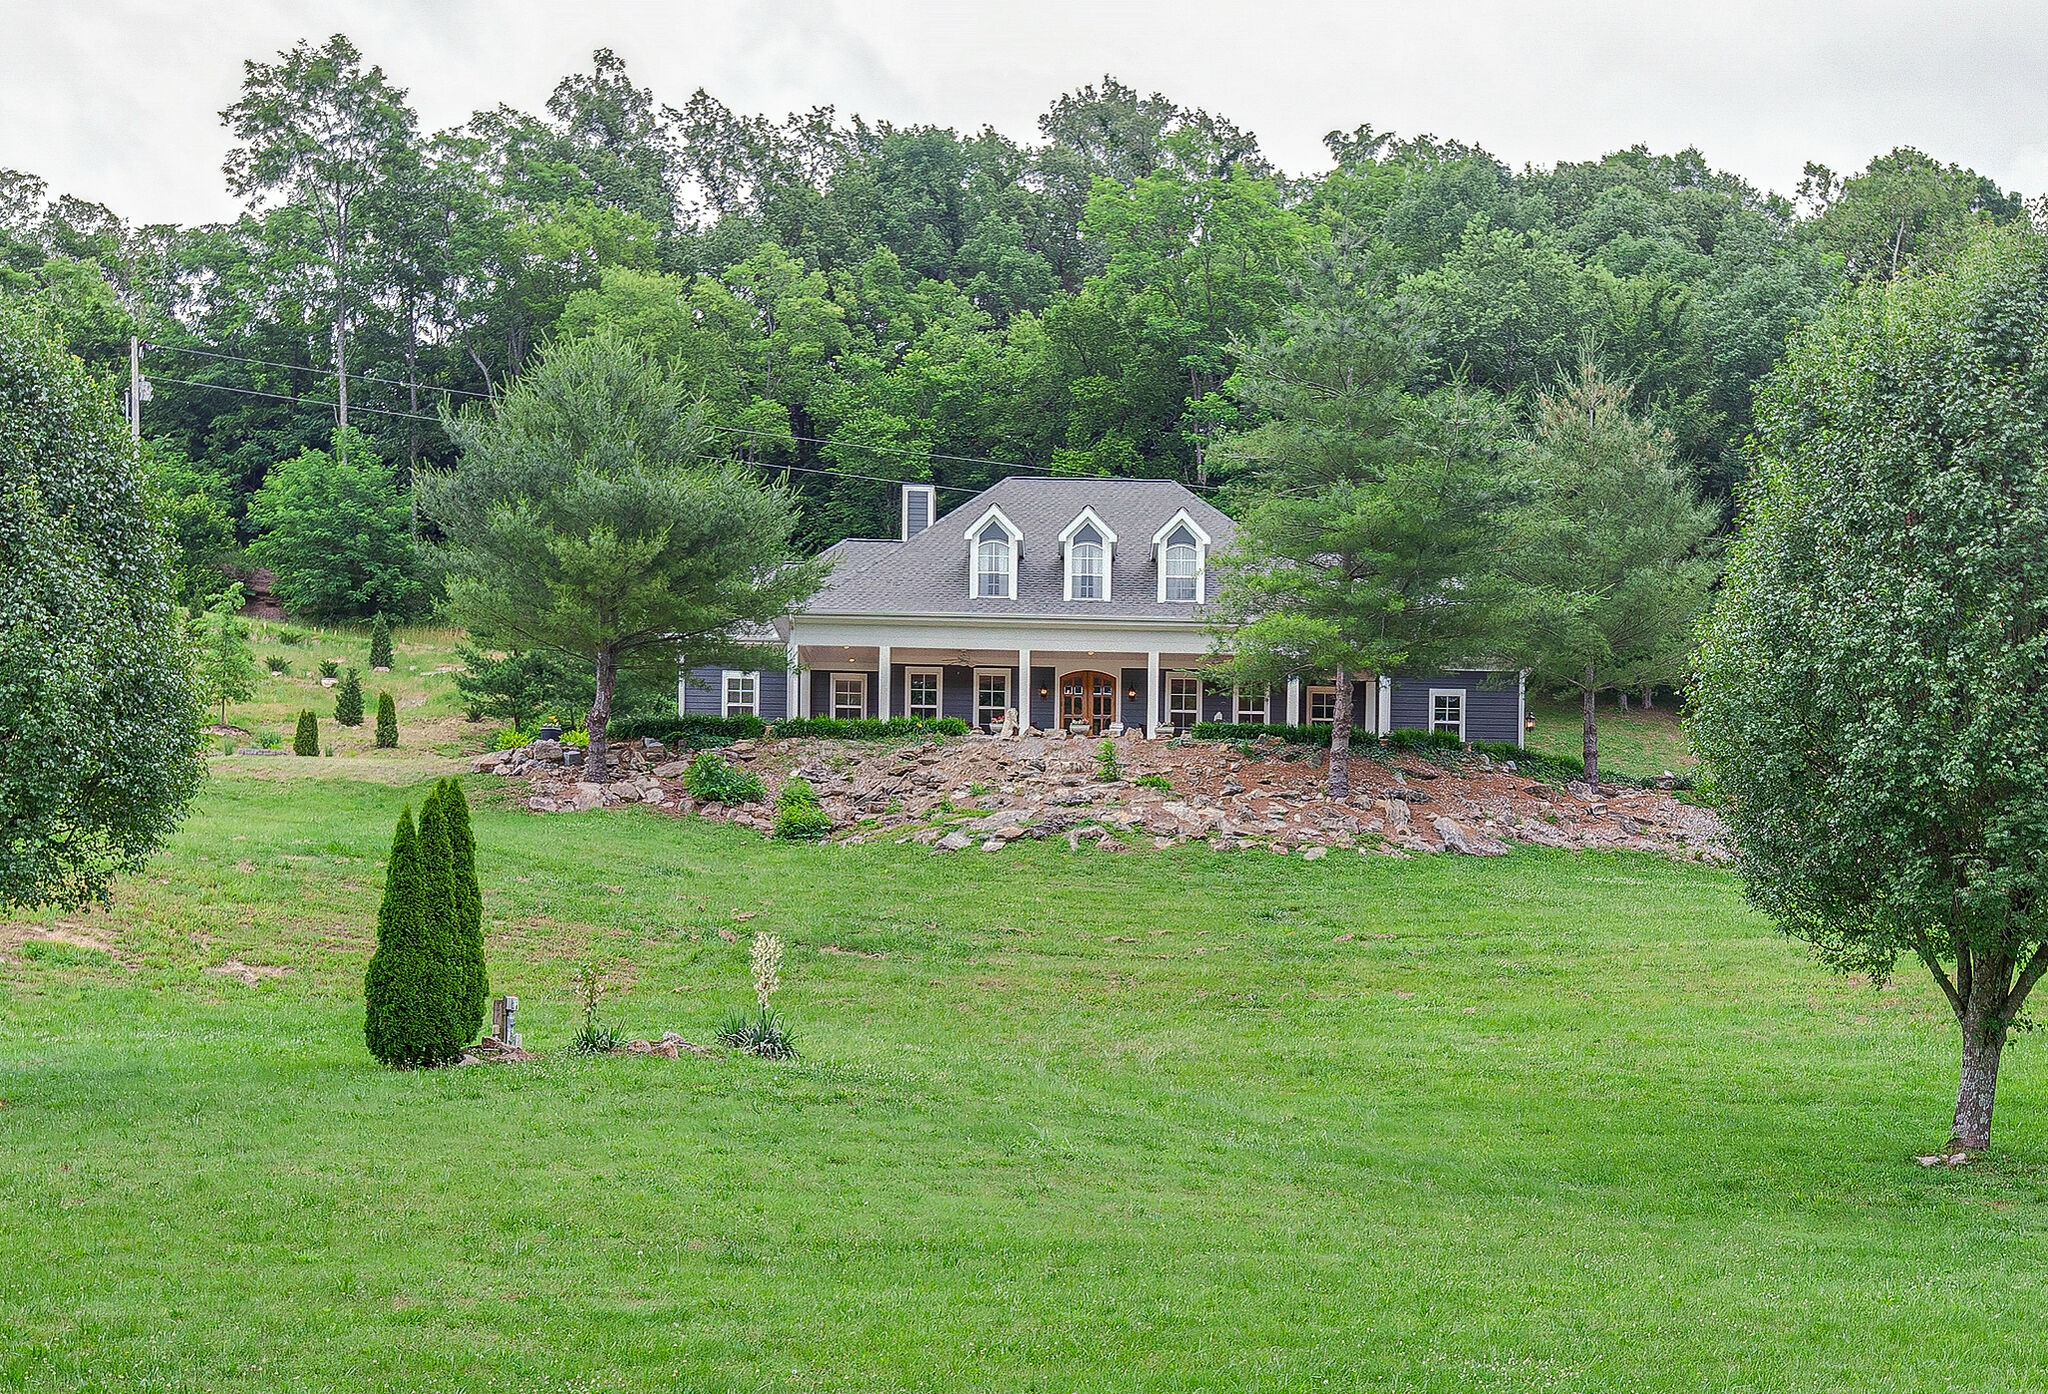 This beautiful cape cod style home was completely renovated in 2020. This home was featured in a national magazine by Tanya Tucker. A building site is prepared for a barn and horses. Completely hidden writers cabin of 1025 sq ft on top of ridge. Spectacular western porch view overlooking the valley. Centrally located to Franklin and Leiper's Fork.